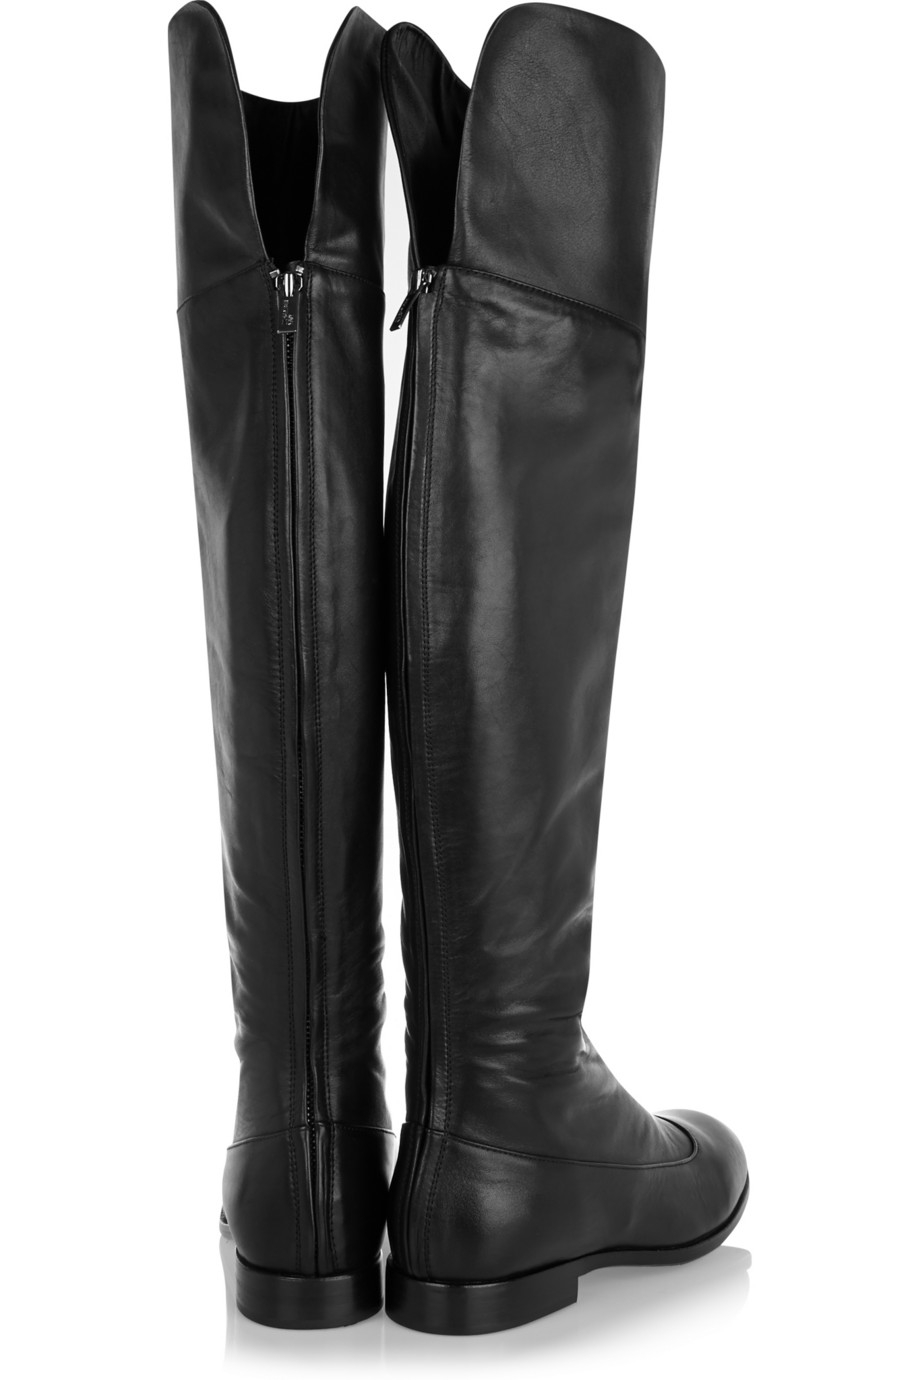 Black Leather Over The Knee Boots YFzCiSD7